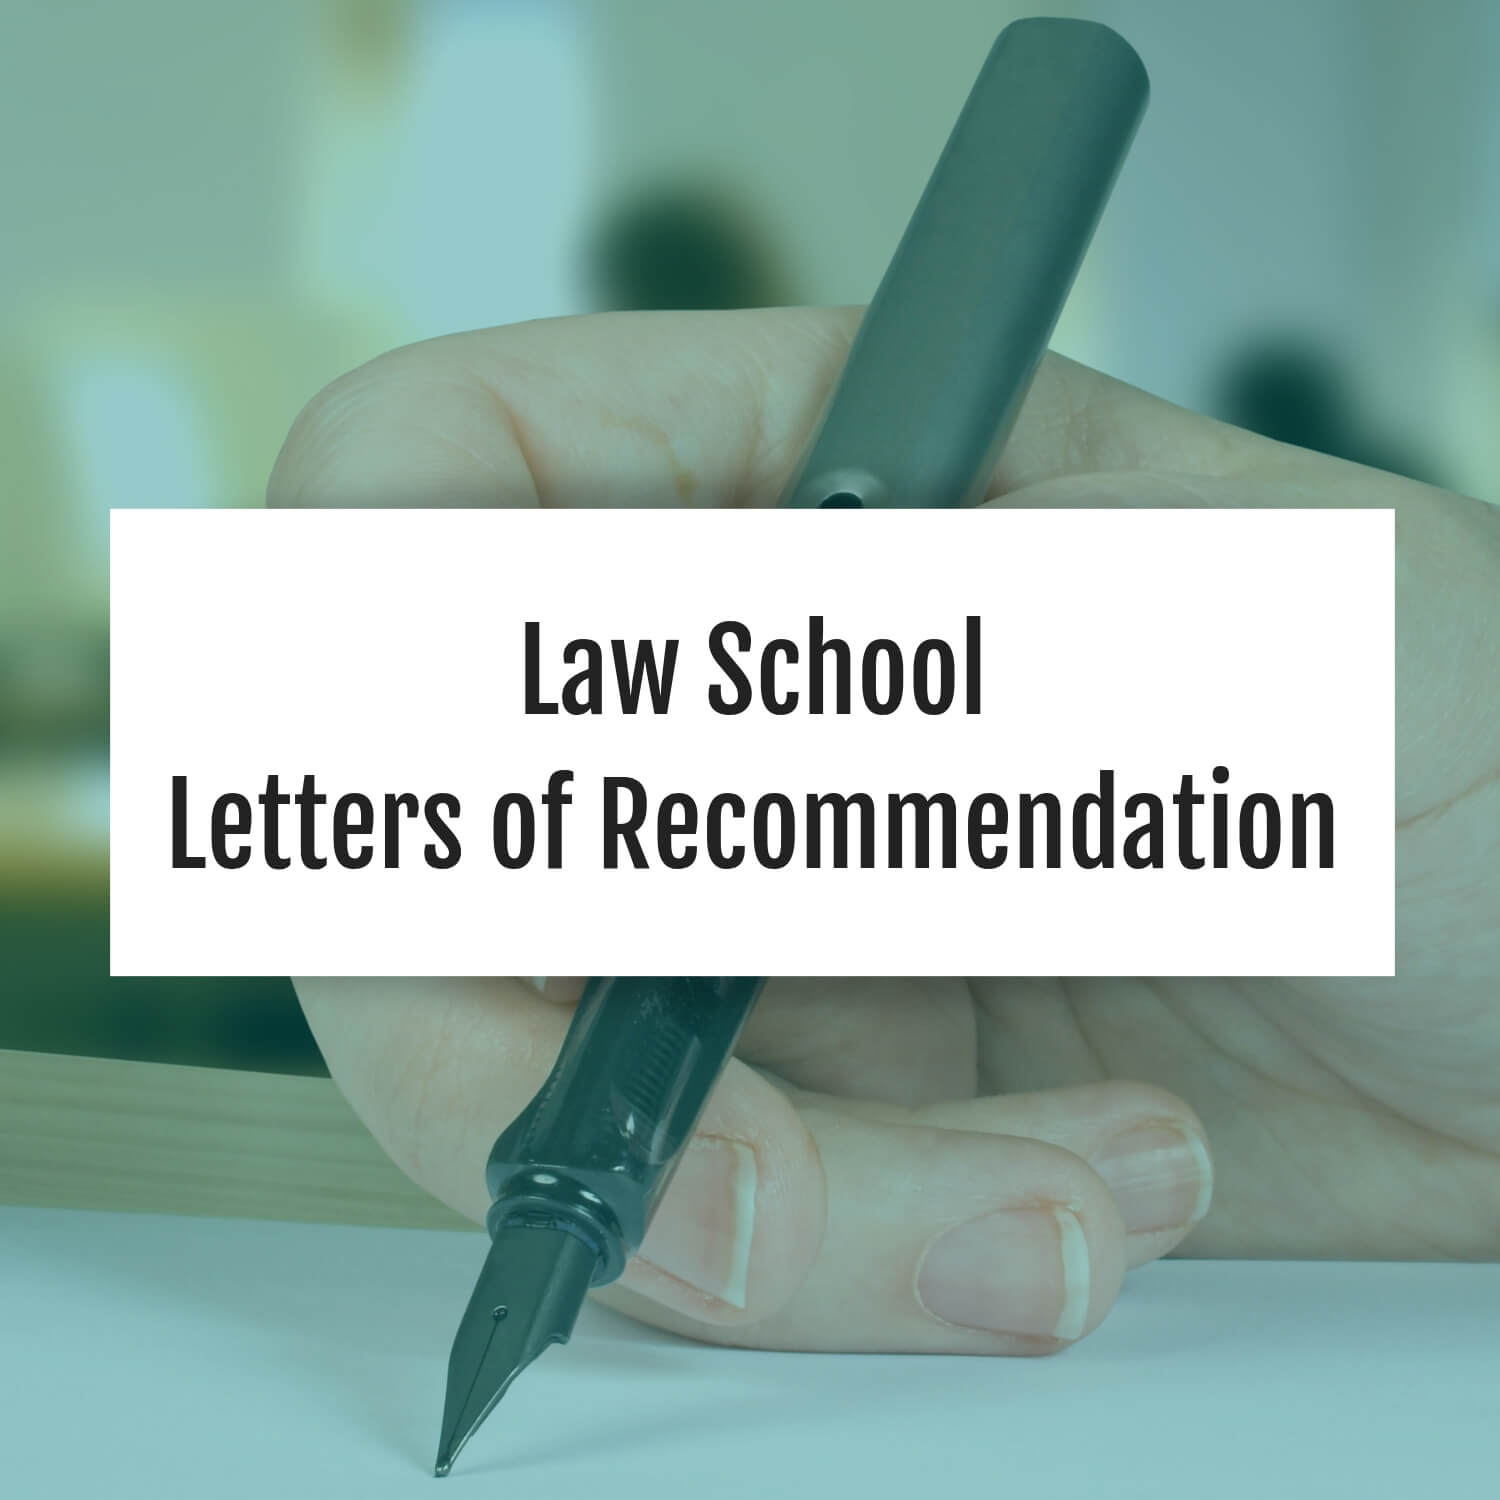 law-school-letters-of-recommendation